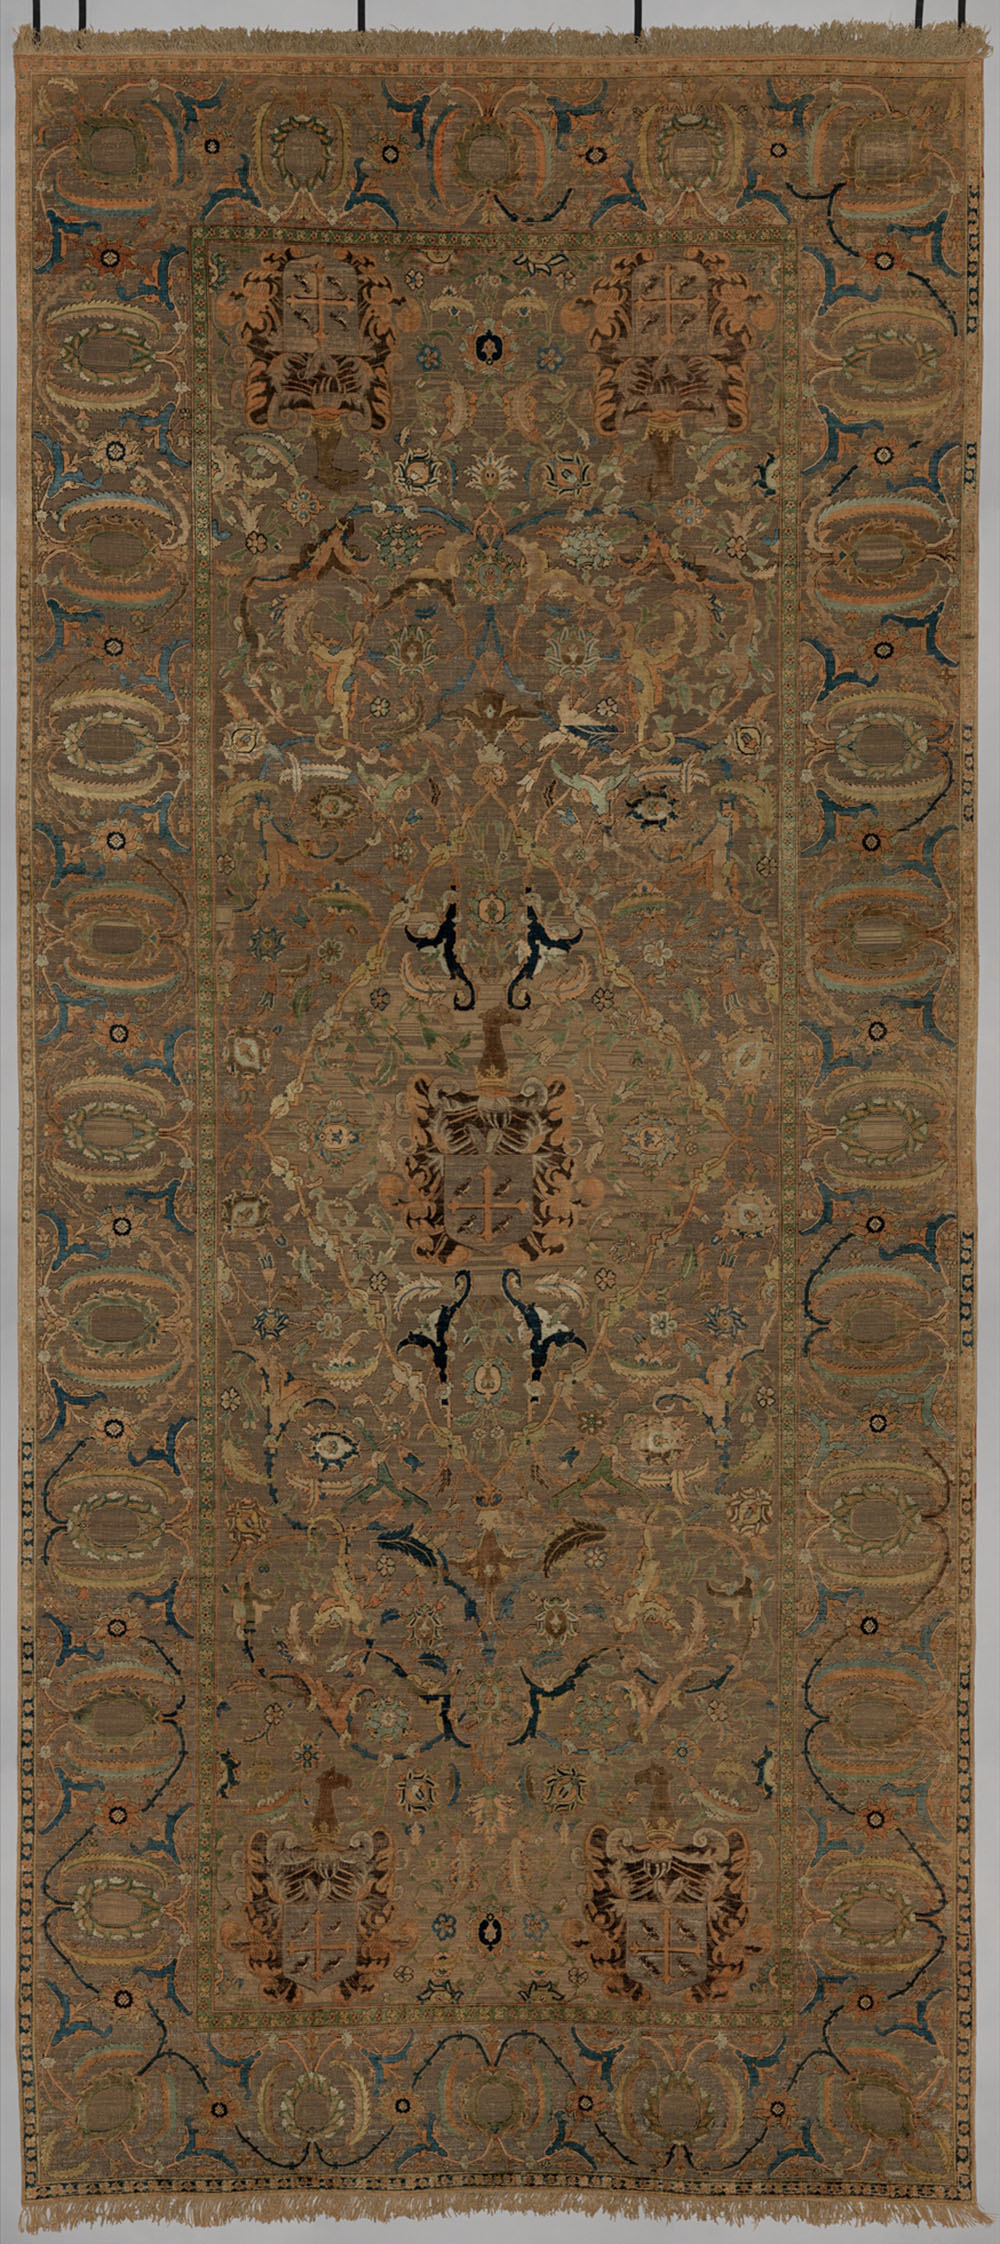 "The Czartoryski Polonaise Carpet, central Persia, 17th century. Silk pile brocaded with metal-wrapped thread; 2.17 x 4.86 m (7' 2"" x 15' 2""). Metropolitan Museum of Art, Gift of John D. Rockefeller Jr., and Harris Brisbane Dick Fund, by exchange, 1945, 45.106"